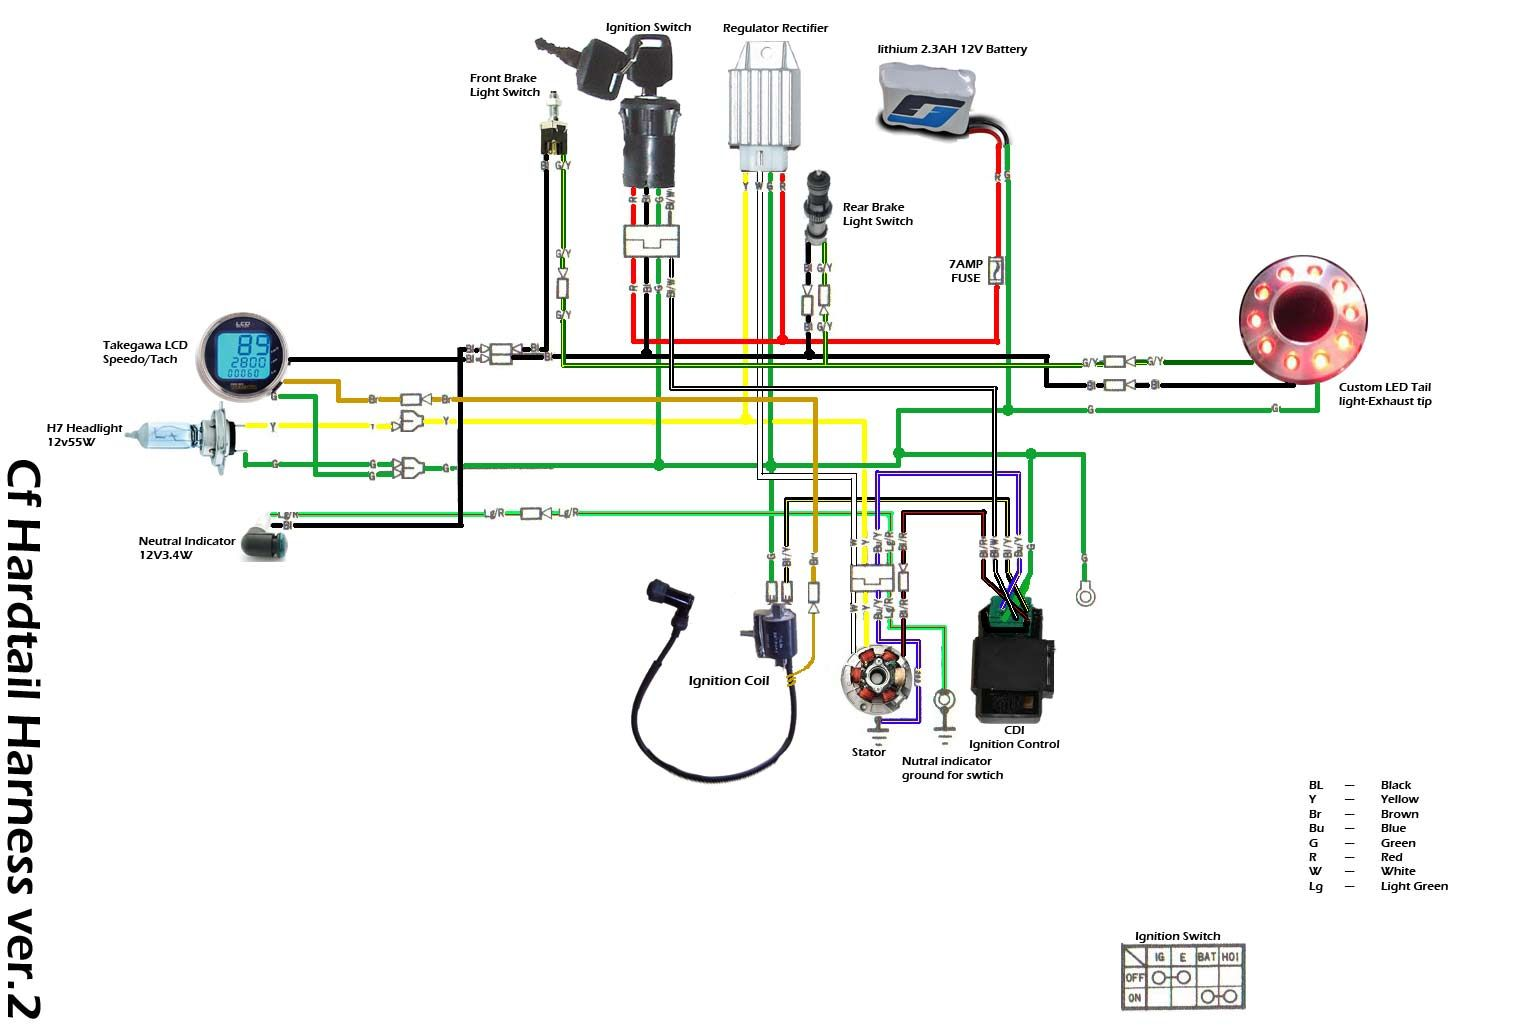 hight resolution of lifan 110 atv wiring diagram wiring diagram detailed outdoor lighting wiring diagram lifan 110 wiring diagram